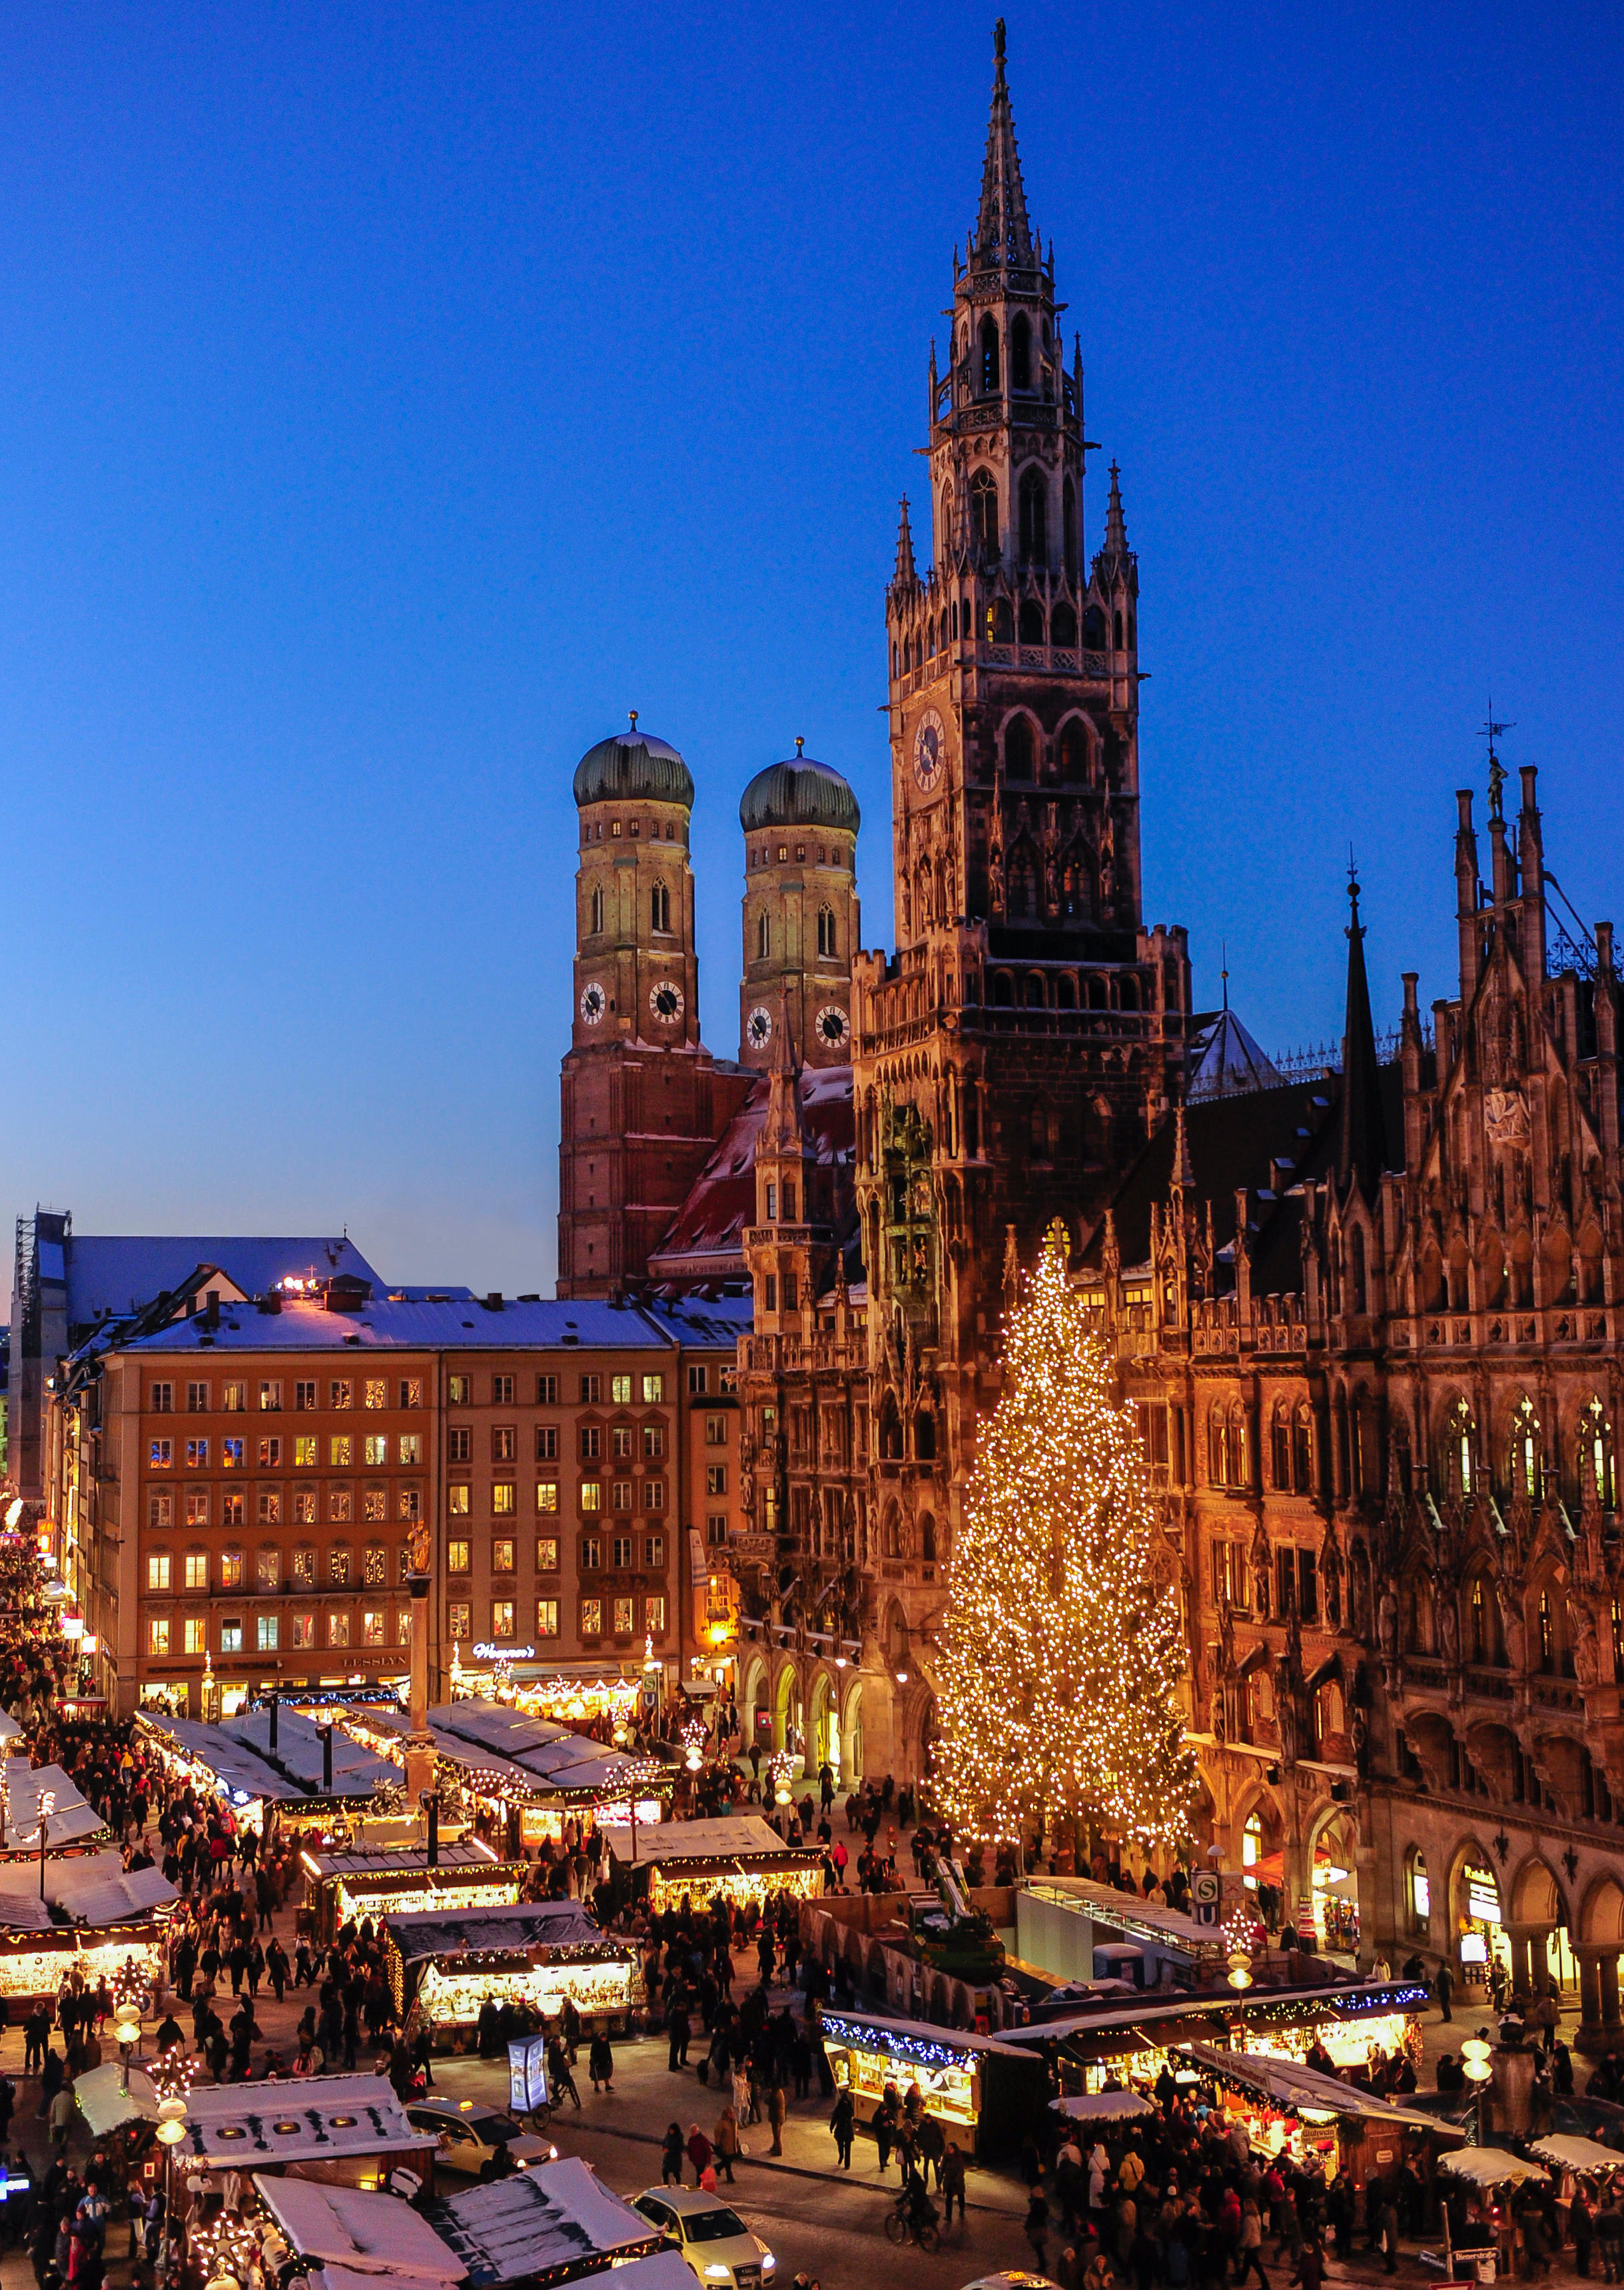 Munich's Christmas Market: What to Expect